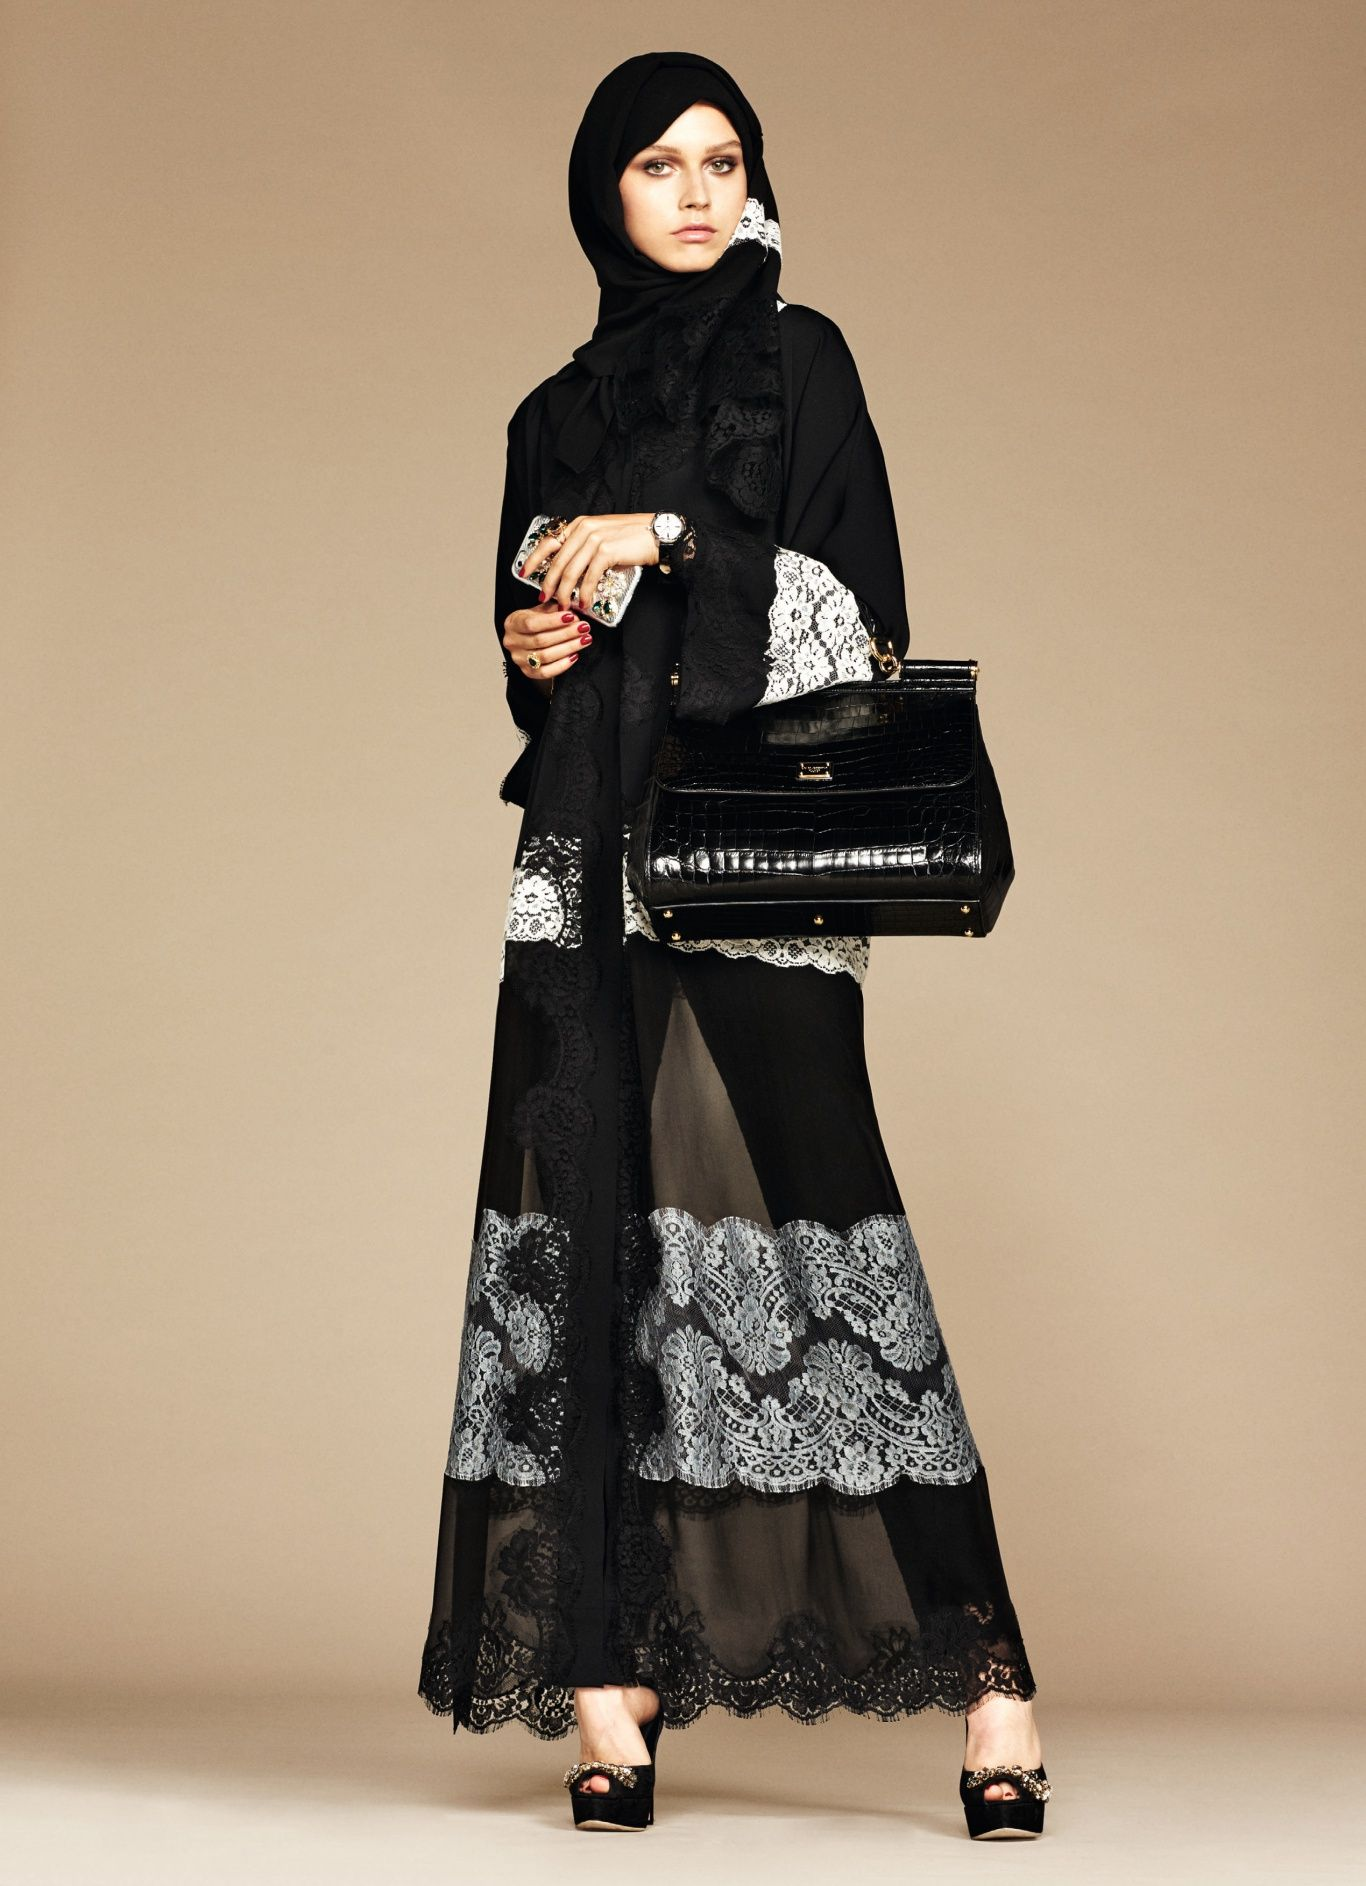 La collection exclusive Abaya et Hijab Dolce & Gabbana robe orientale